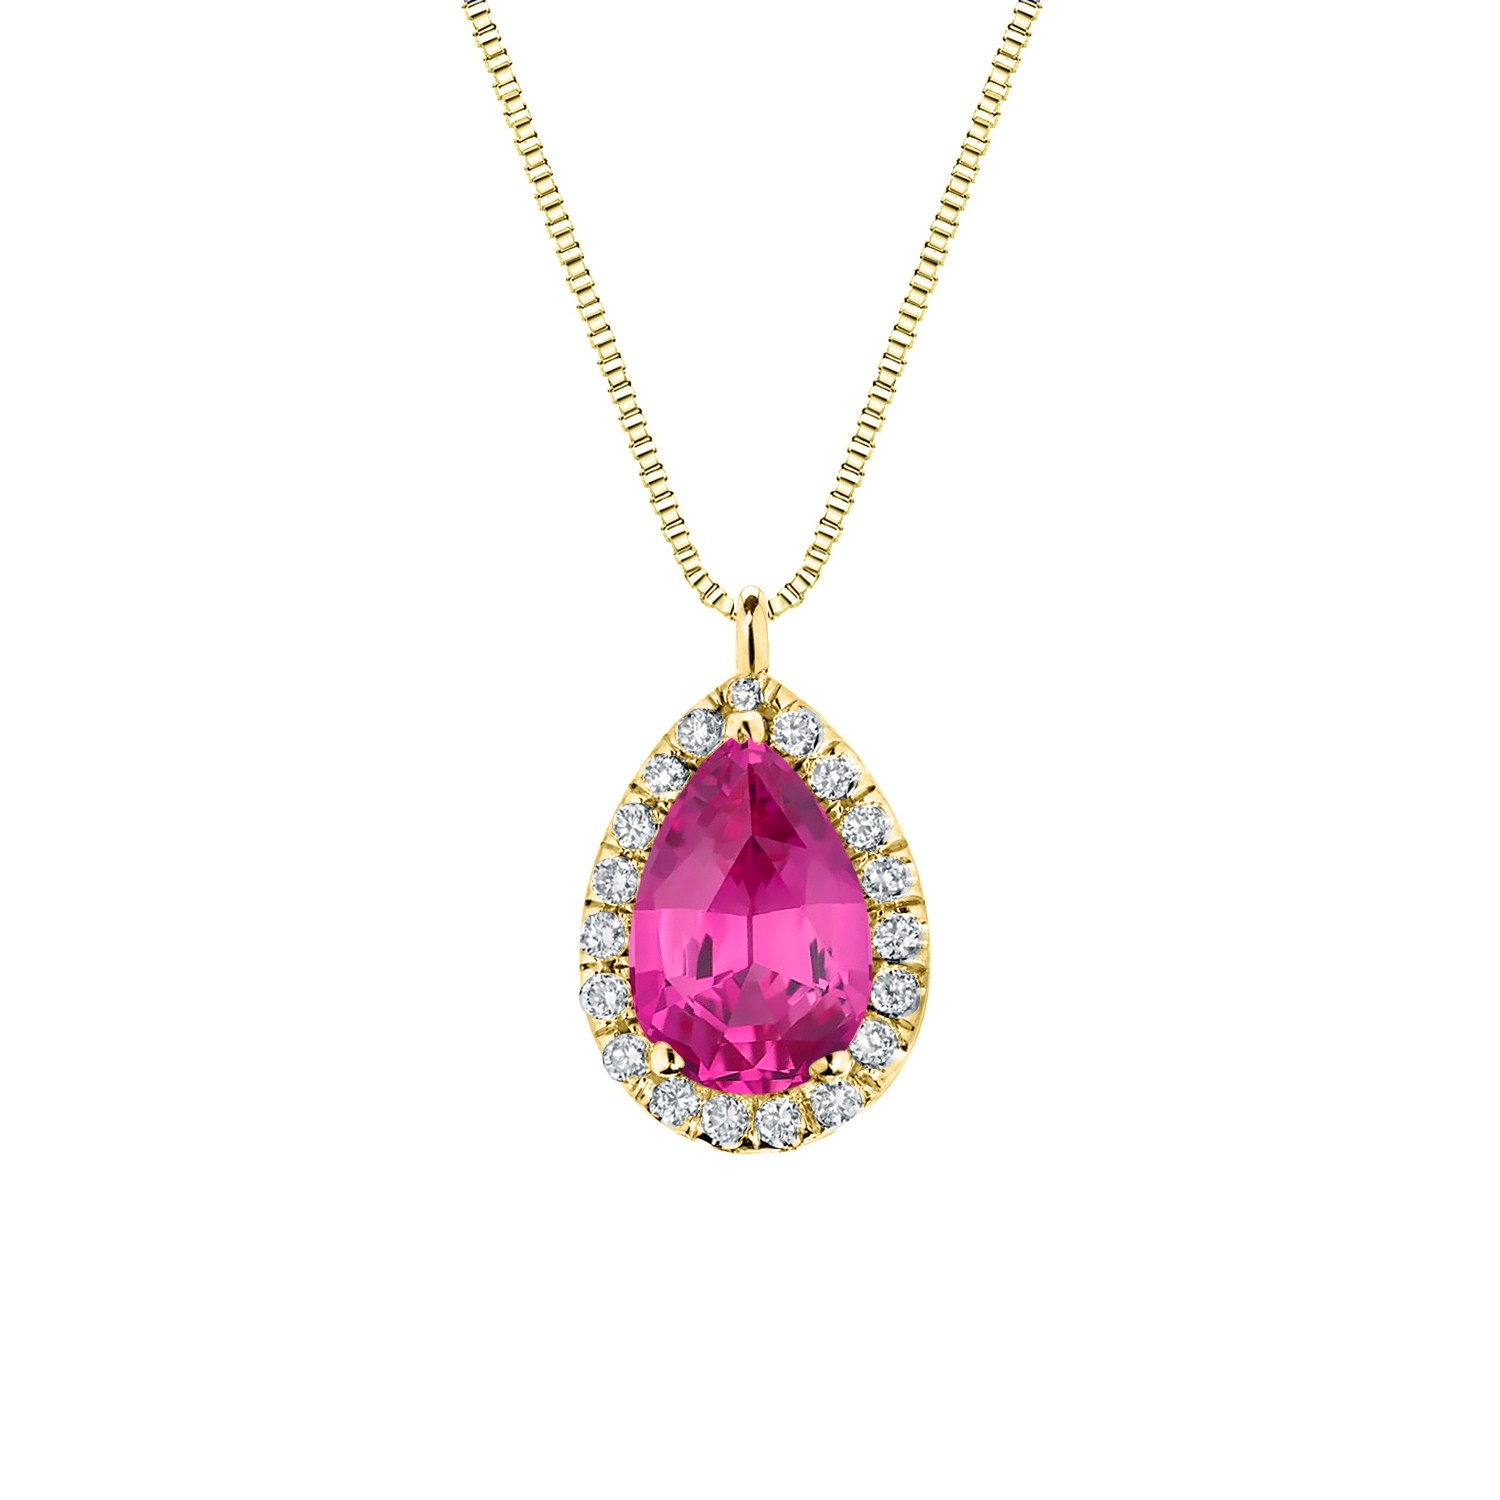 Certified 14k Yellow Gold Pear Shape Pink Sapphire Halo Pendant 1.50 ct. tw. (Pink, AAA)